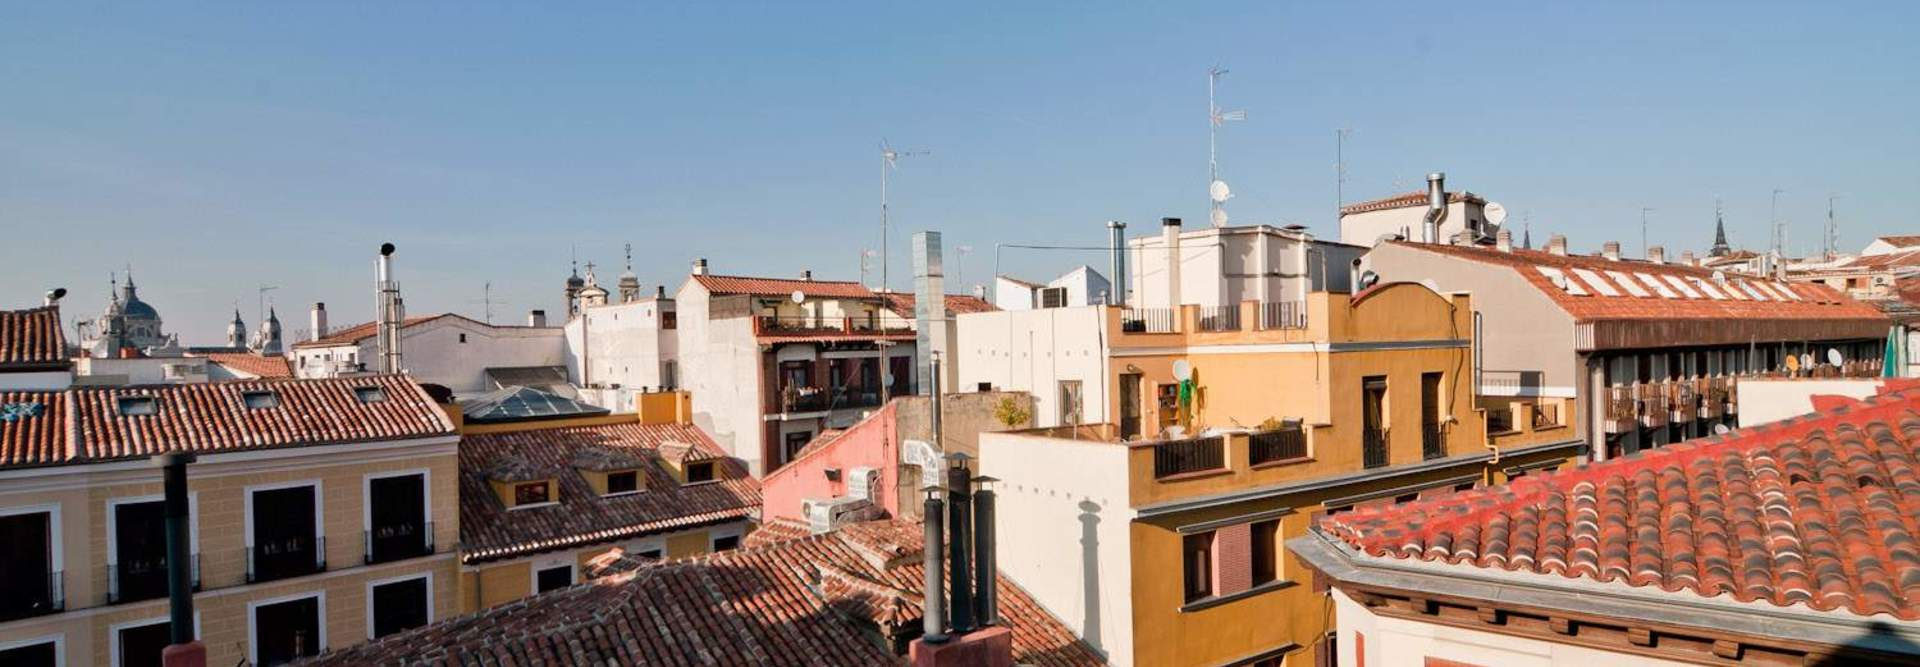 Home alquiler apartamento madrid centro mad4rent  30